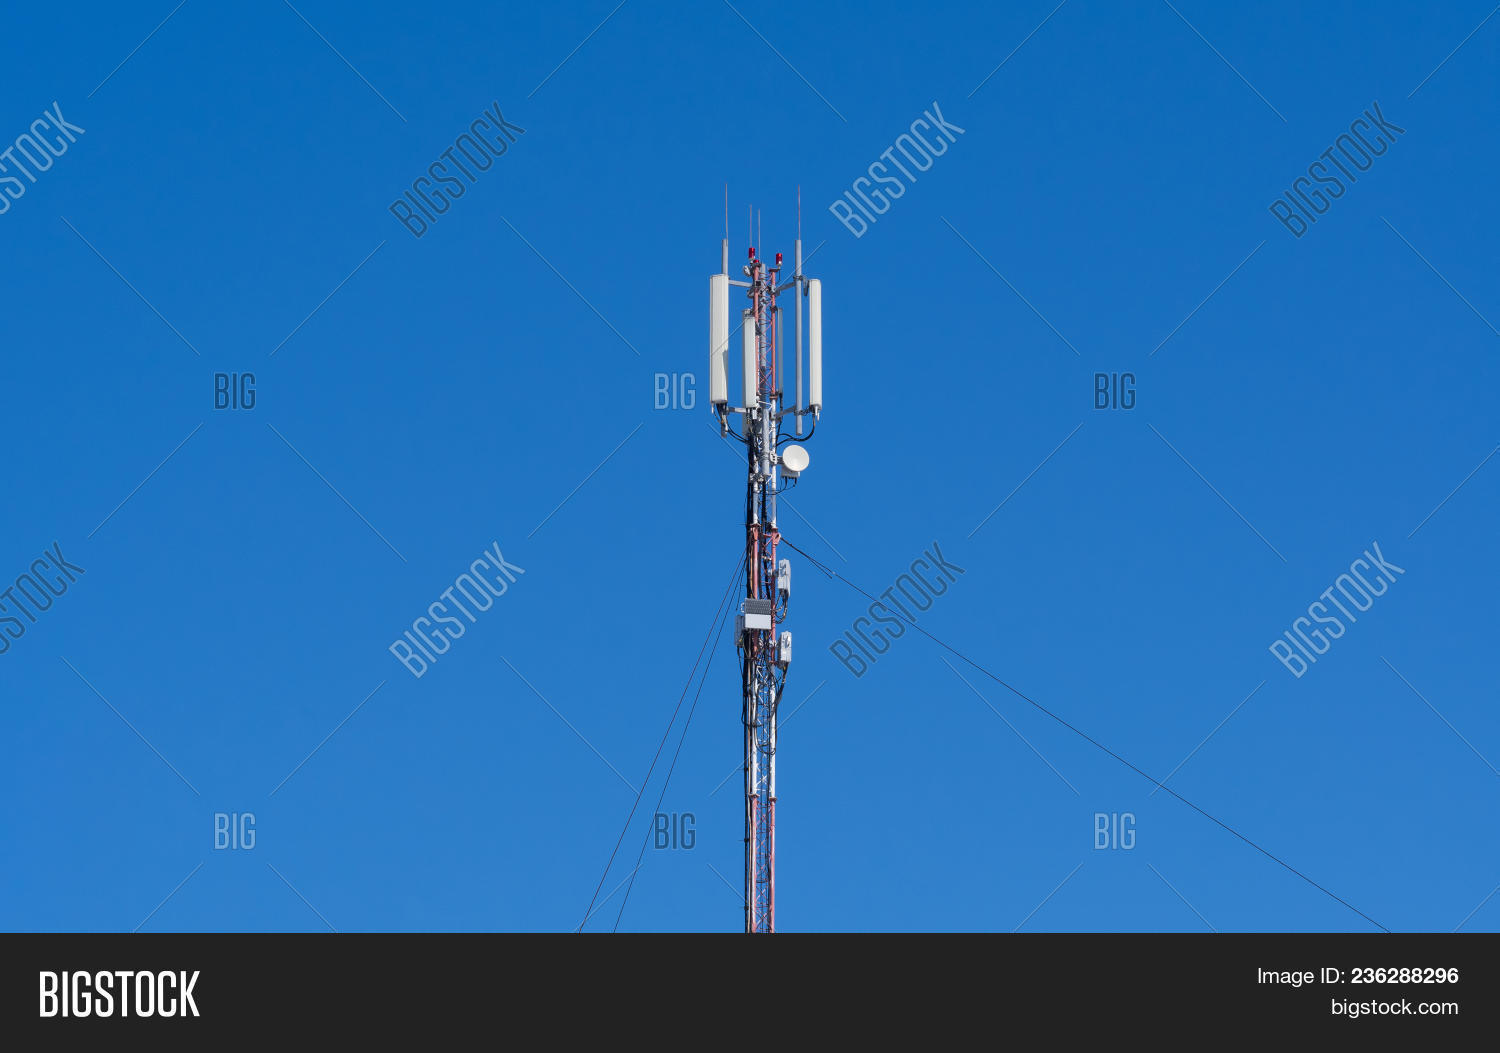 4g 4 5g Cell Site, Tel Image & Photo (Free Trial) | Bigstock